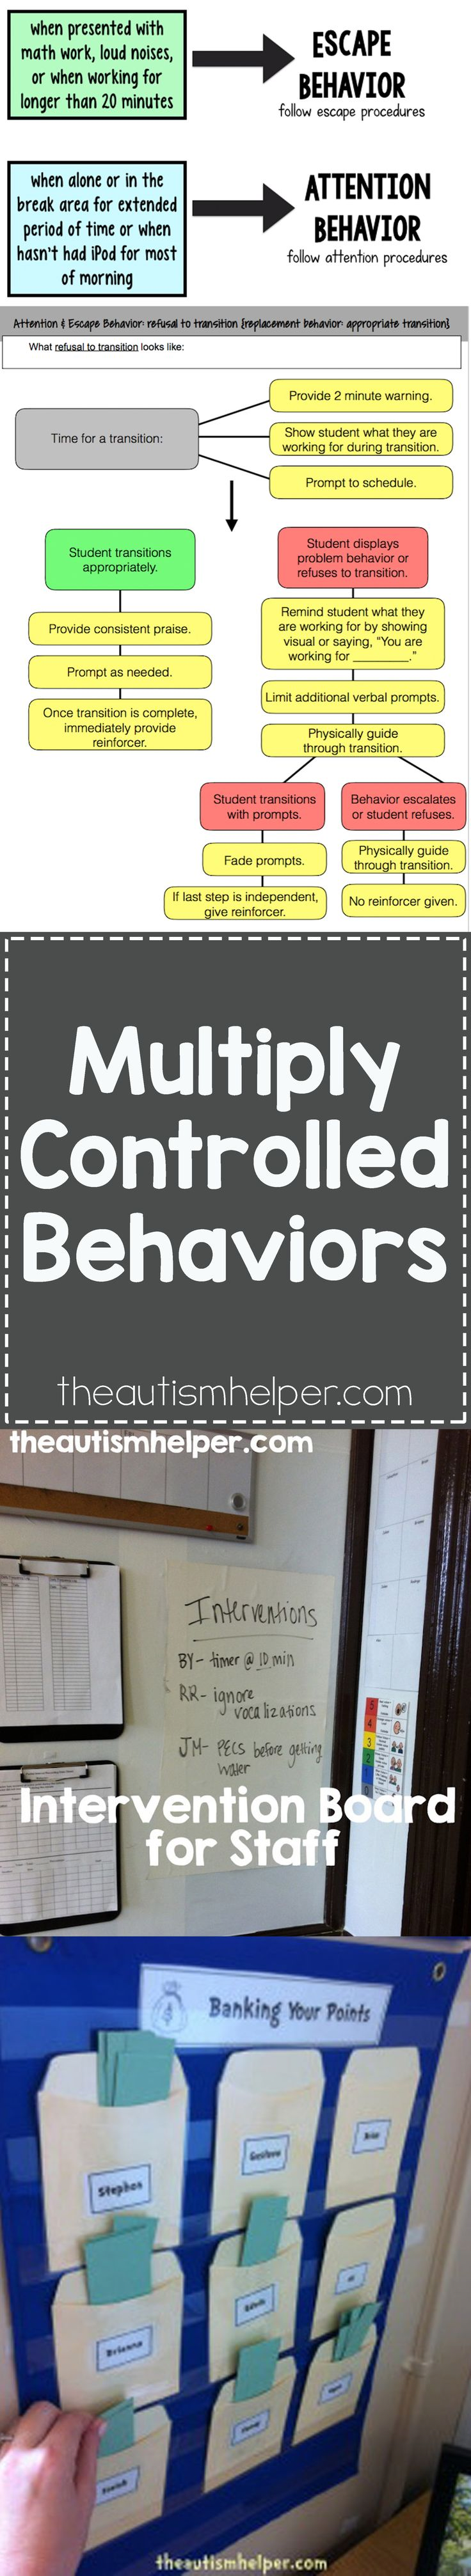 Of course, behavior doesn't always fit neatly into one category. Sometimes behaviors have more than one function - or are what we call multiply controlled. These interventions take some creativity, so let's get to it on the blog!! From theautismhelper.com #theautismhelper